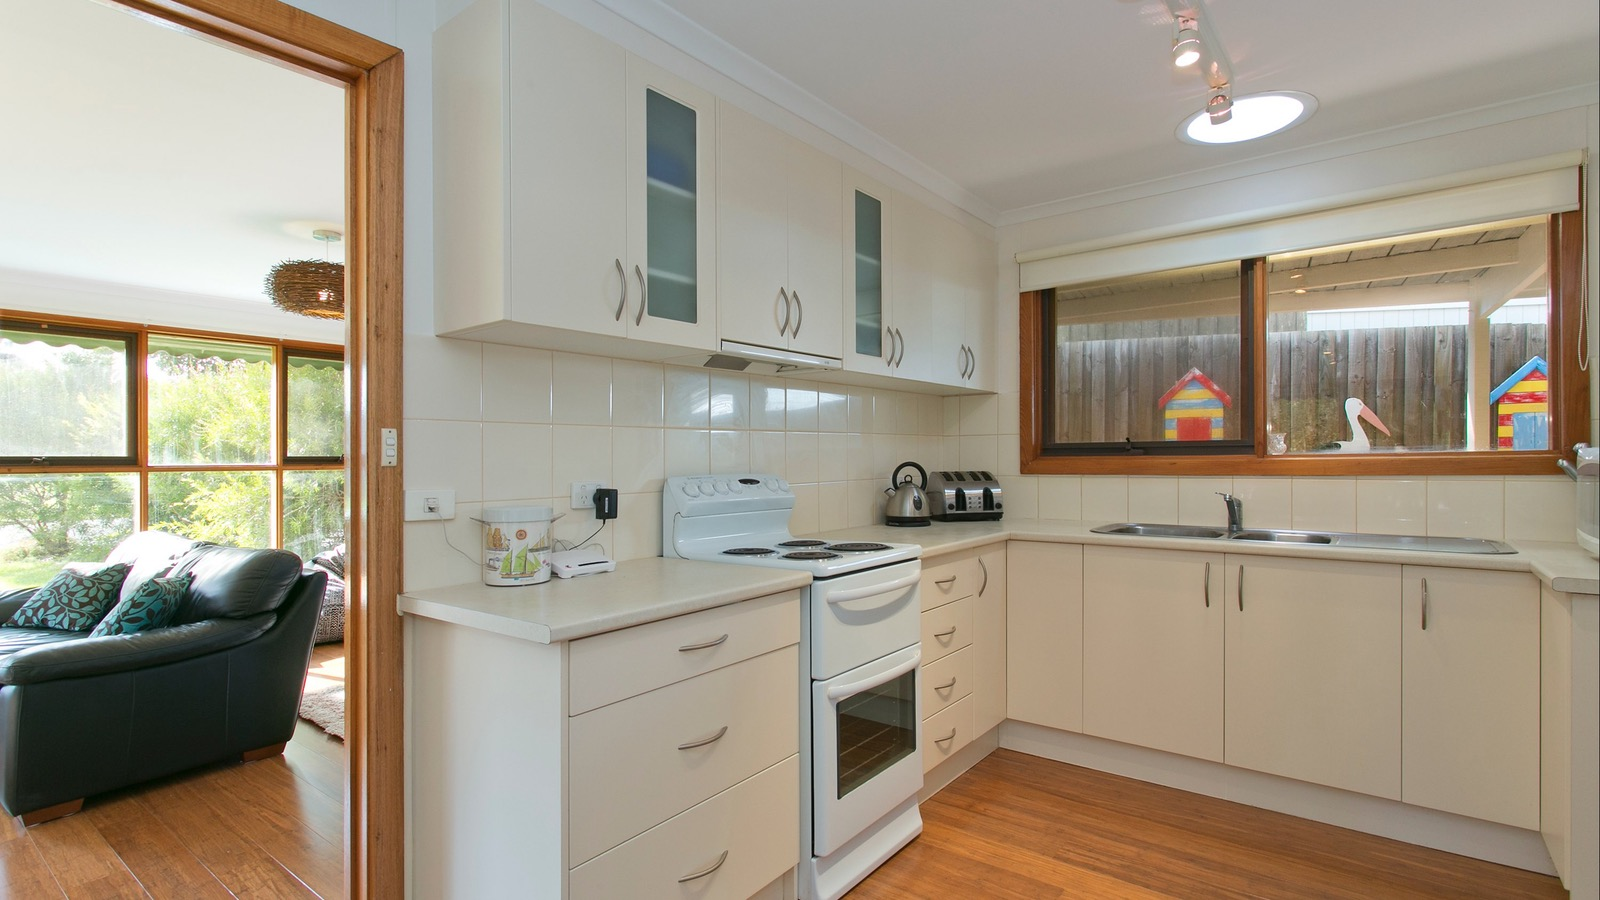 Fully equipped kitchen, dishwasher, microwave